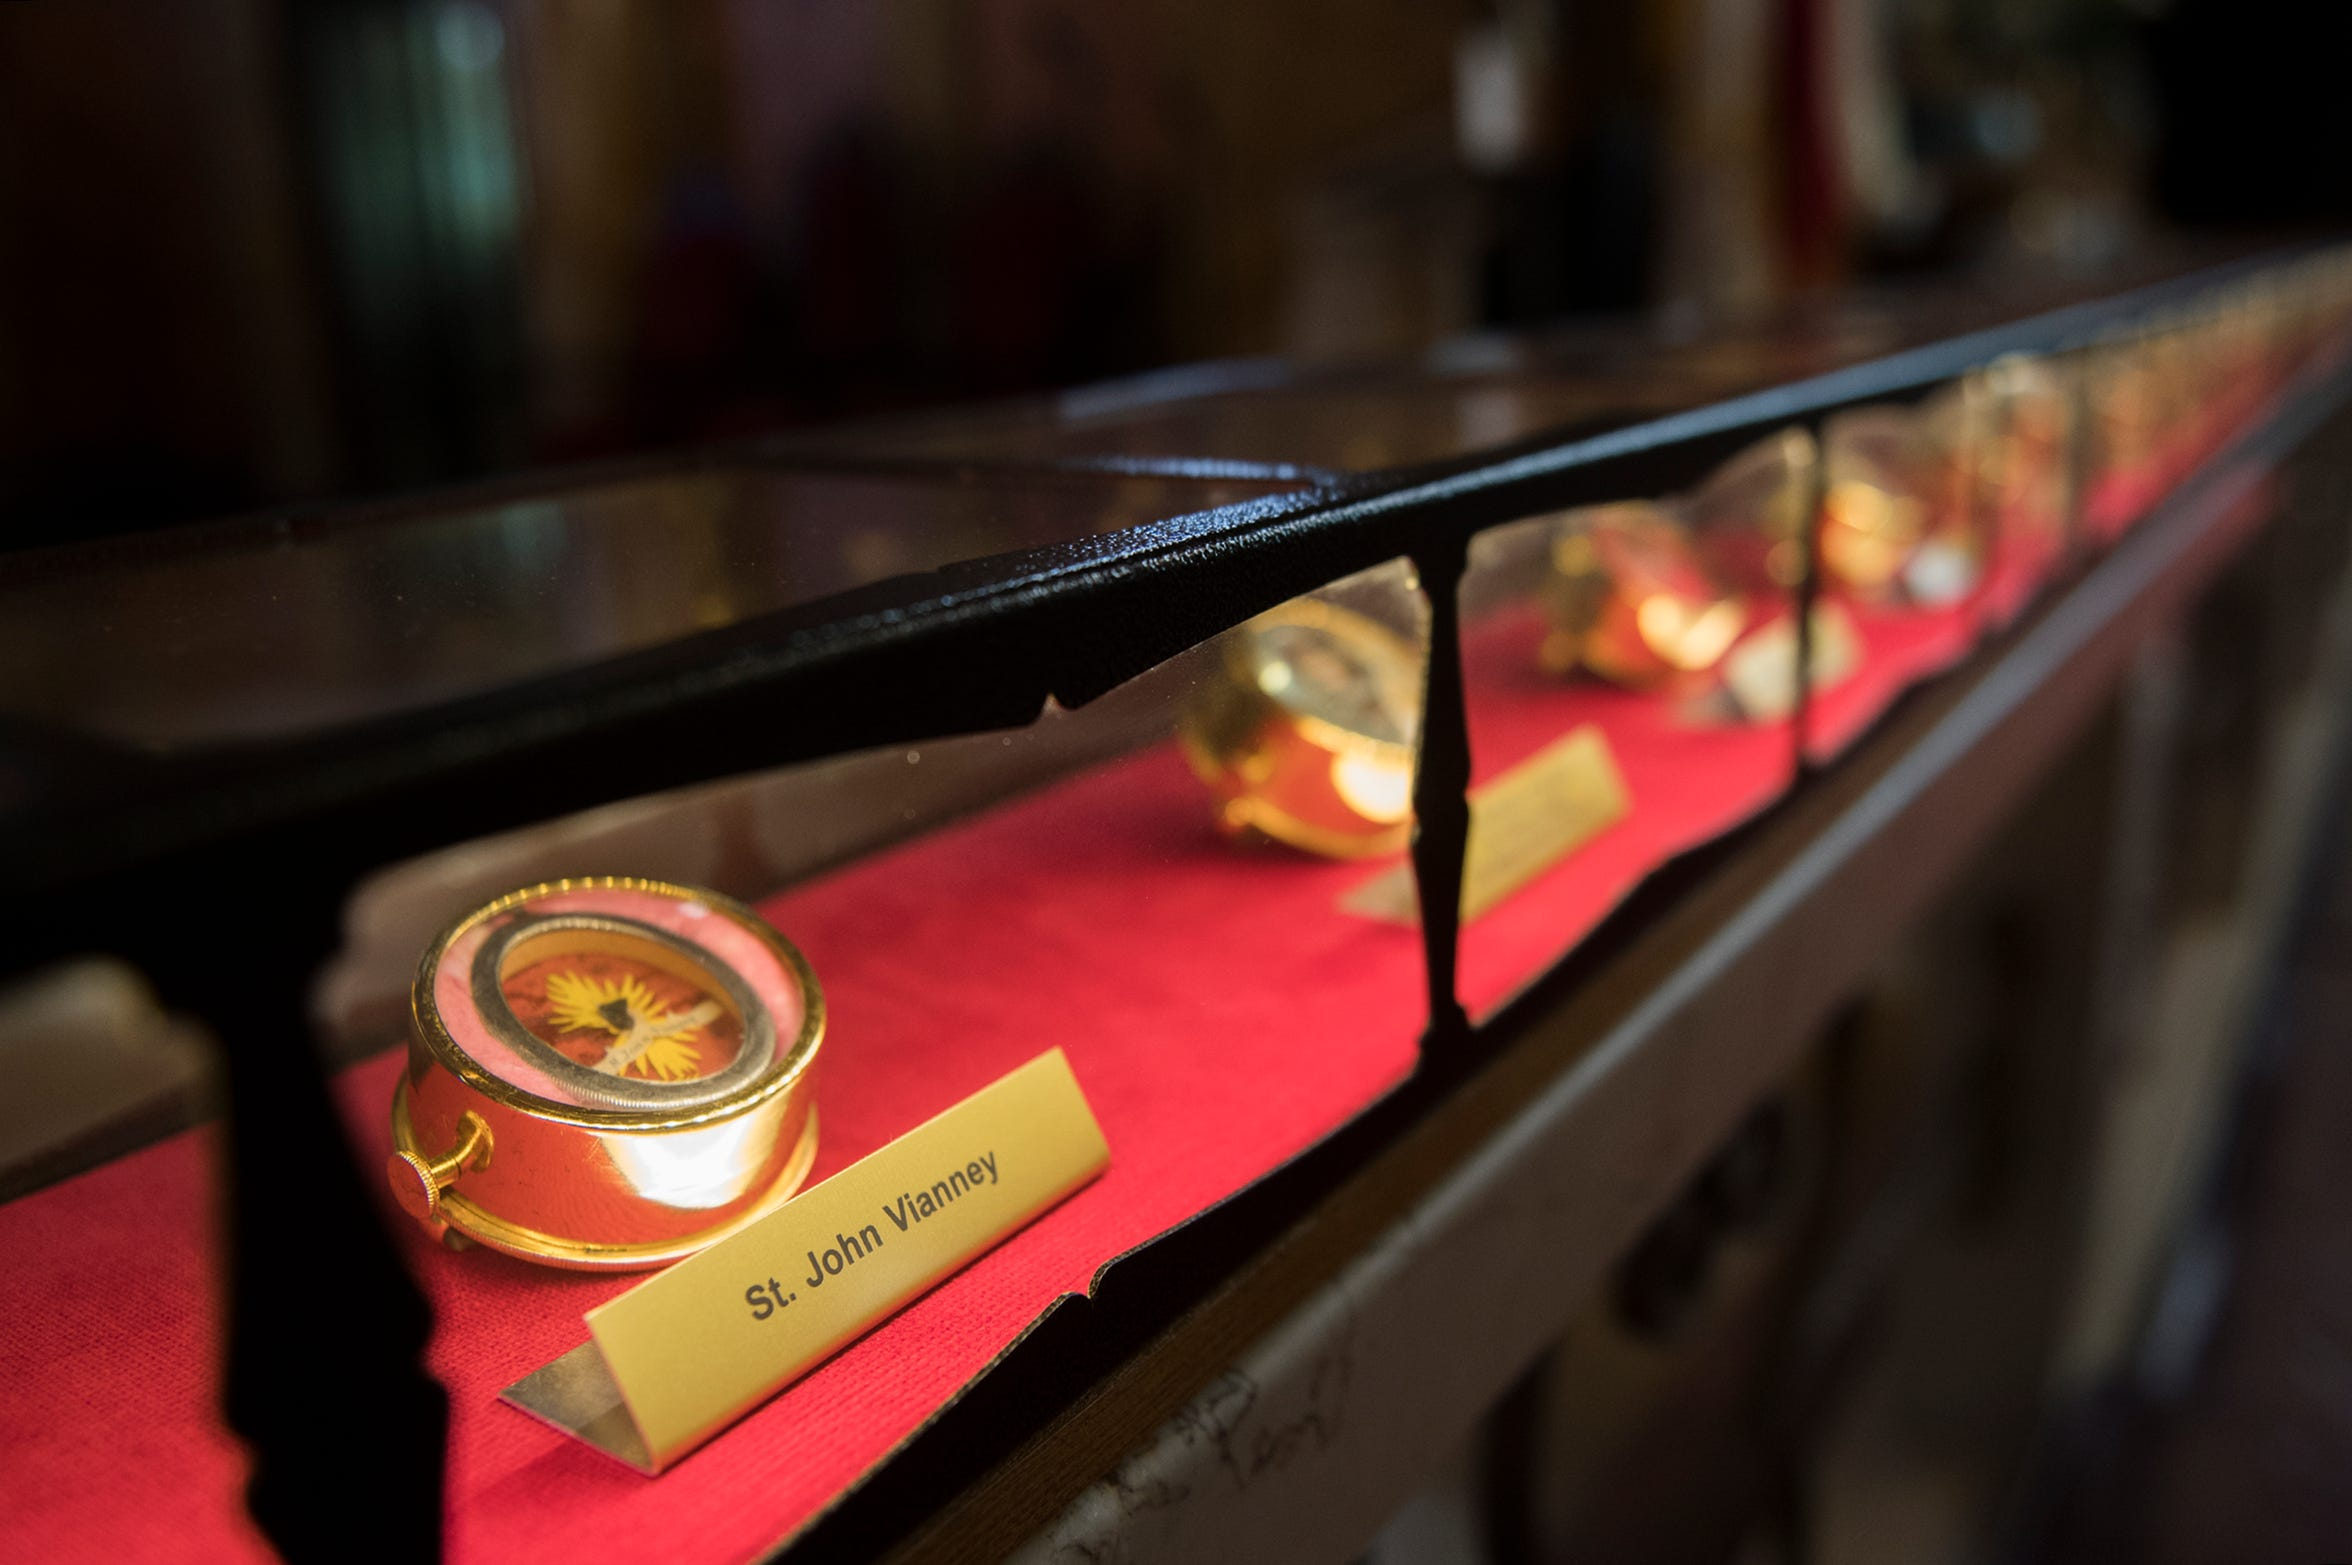 Dozens of relics on display inside St. Joseph Roman Catholic Church Thursday, Feb. 28, 2019 in Camden, N.J.